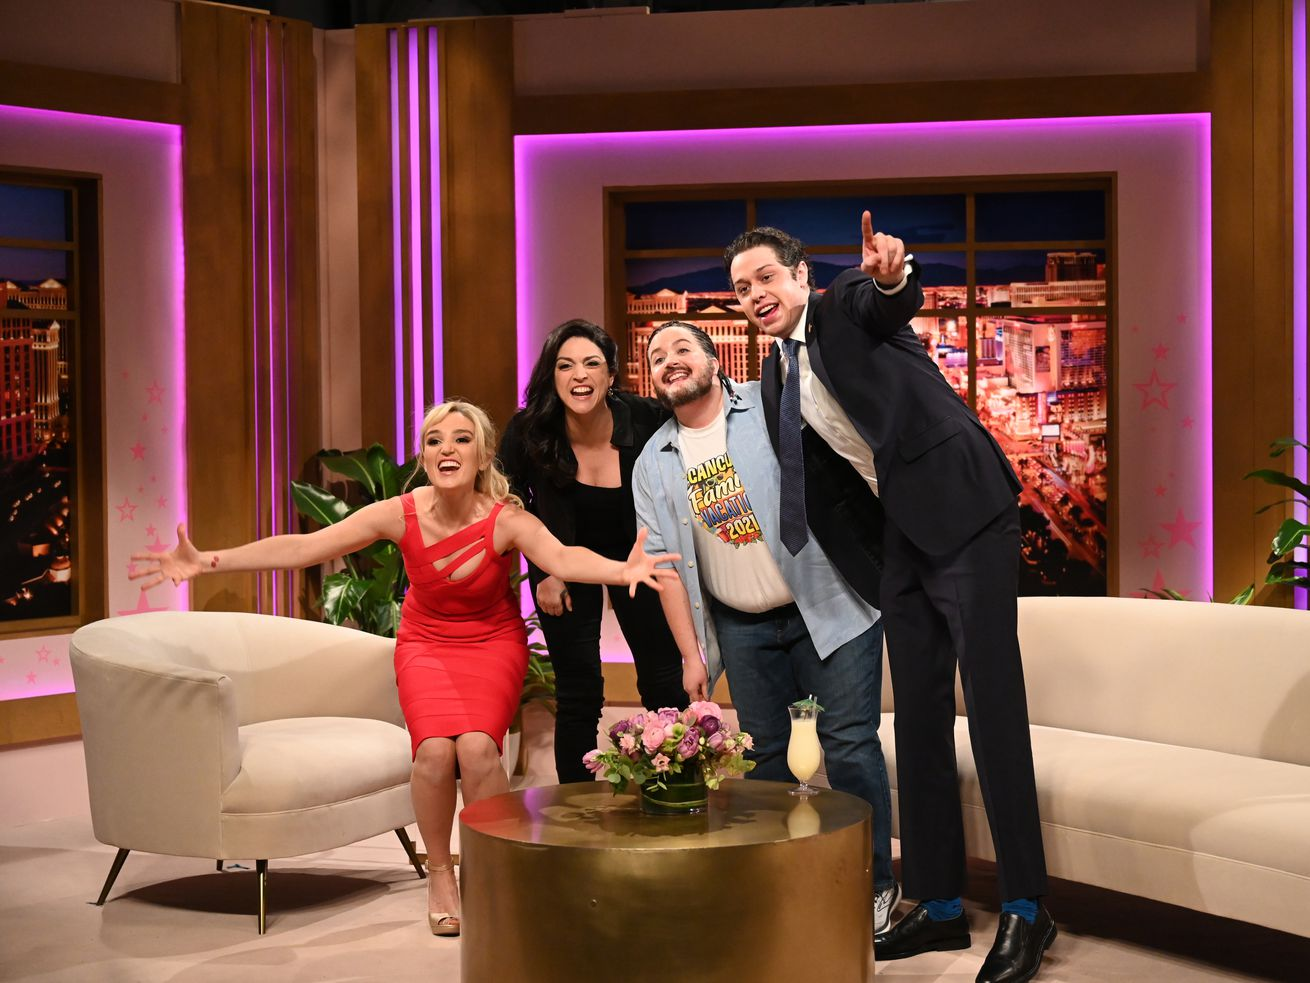 """Chloe Fineman as Britney Spears, Cecily Strong as Gina Carano, Aidy Bryant as Ted Cruz, and Pete Davidson as Andrew Cuomo huddle together in front of cream colored chairs on a talk show stage, shouting, """"Live from New York, it's Saturday Night Live!"""""""